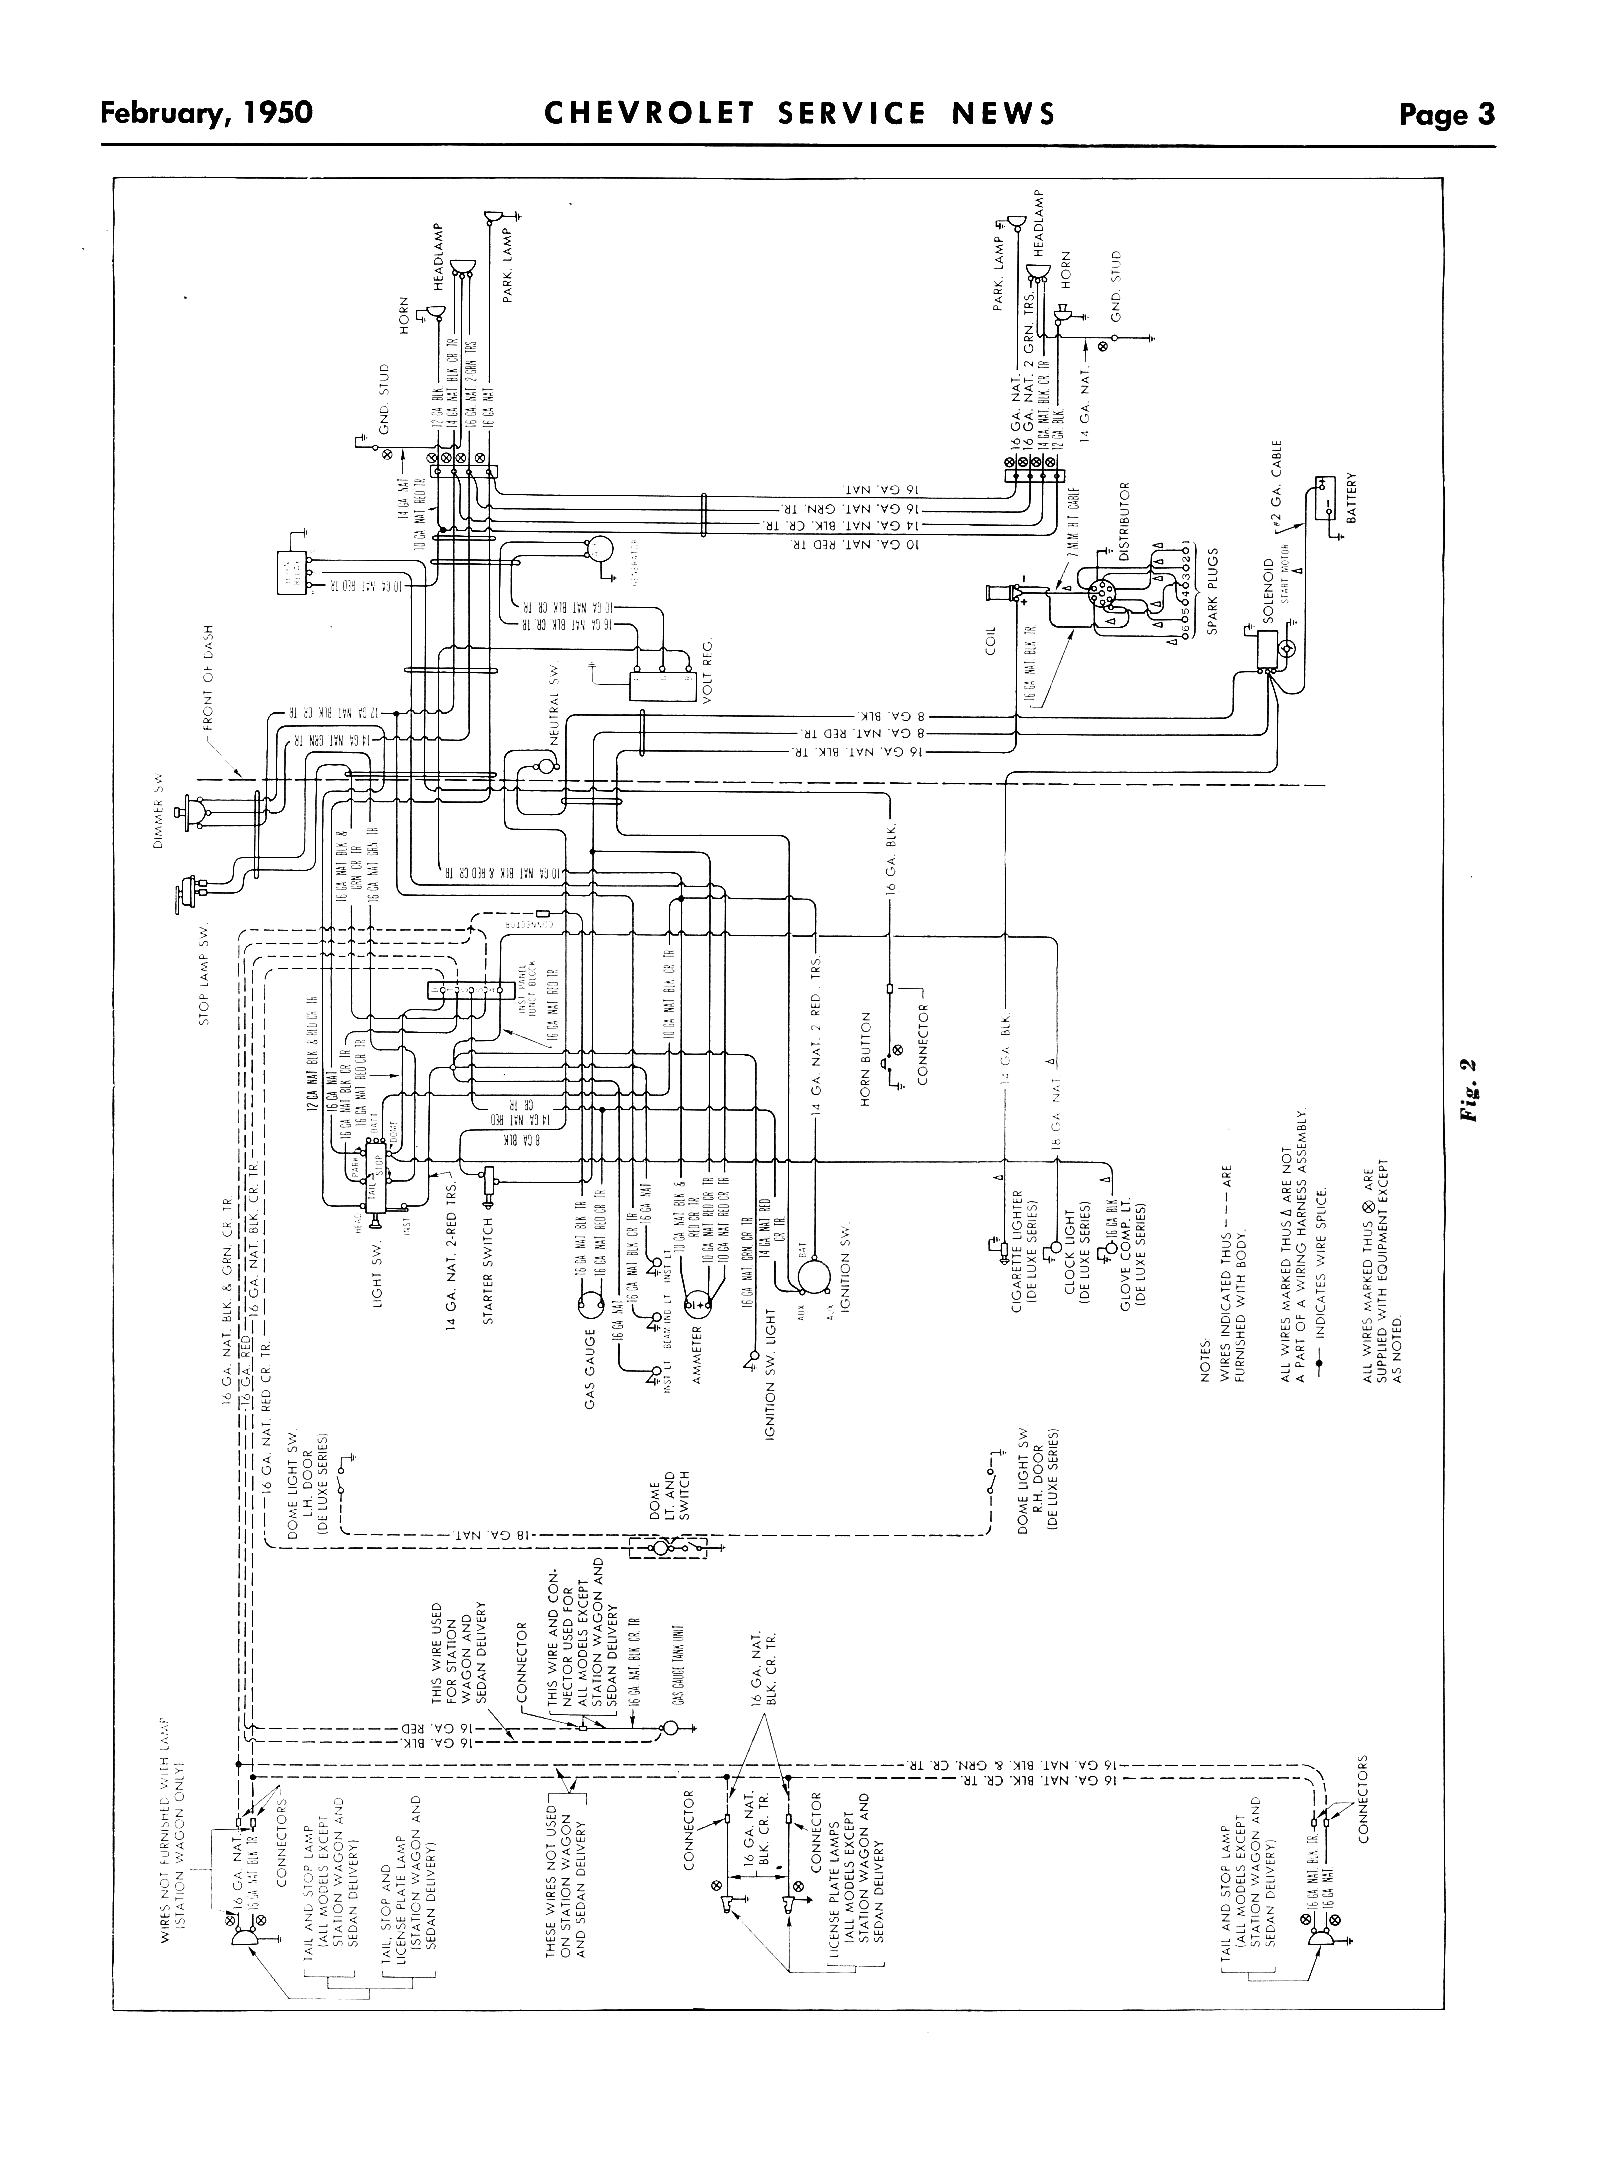 50 Chevy Wiring Diagram 50 Free Engine Image For User Manual Download